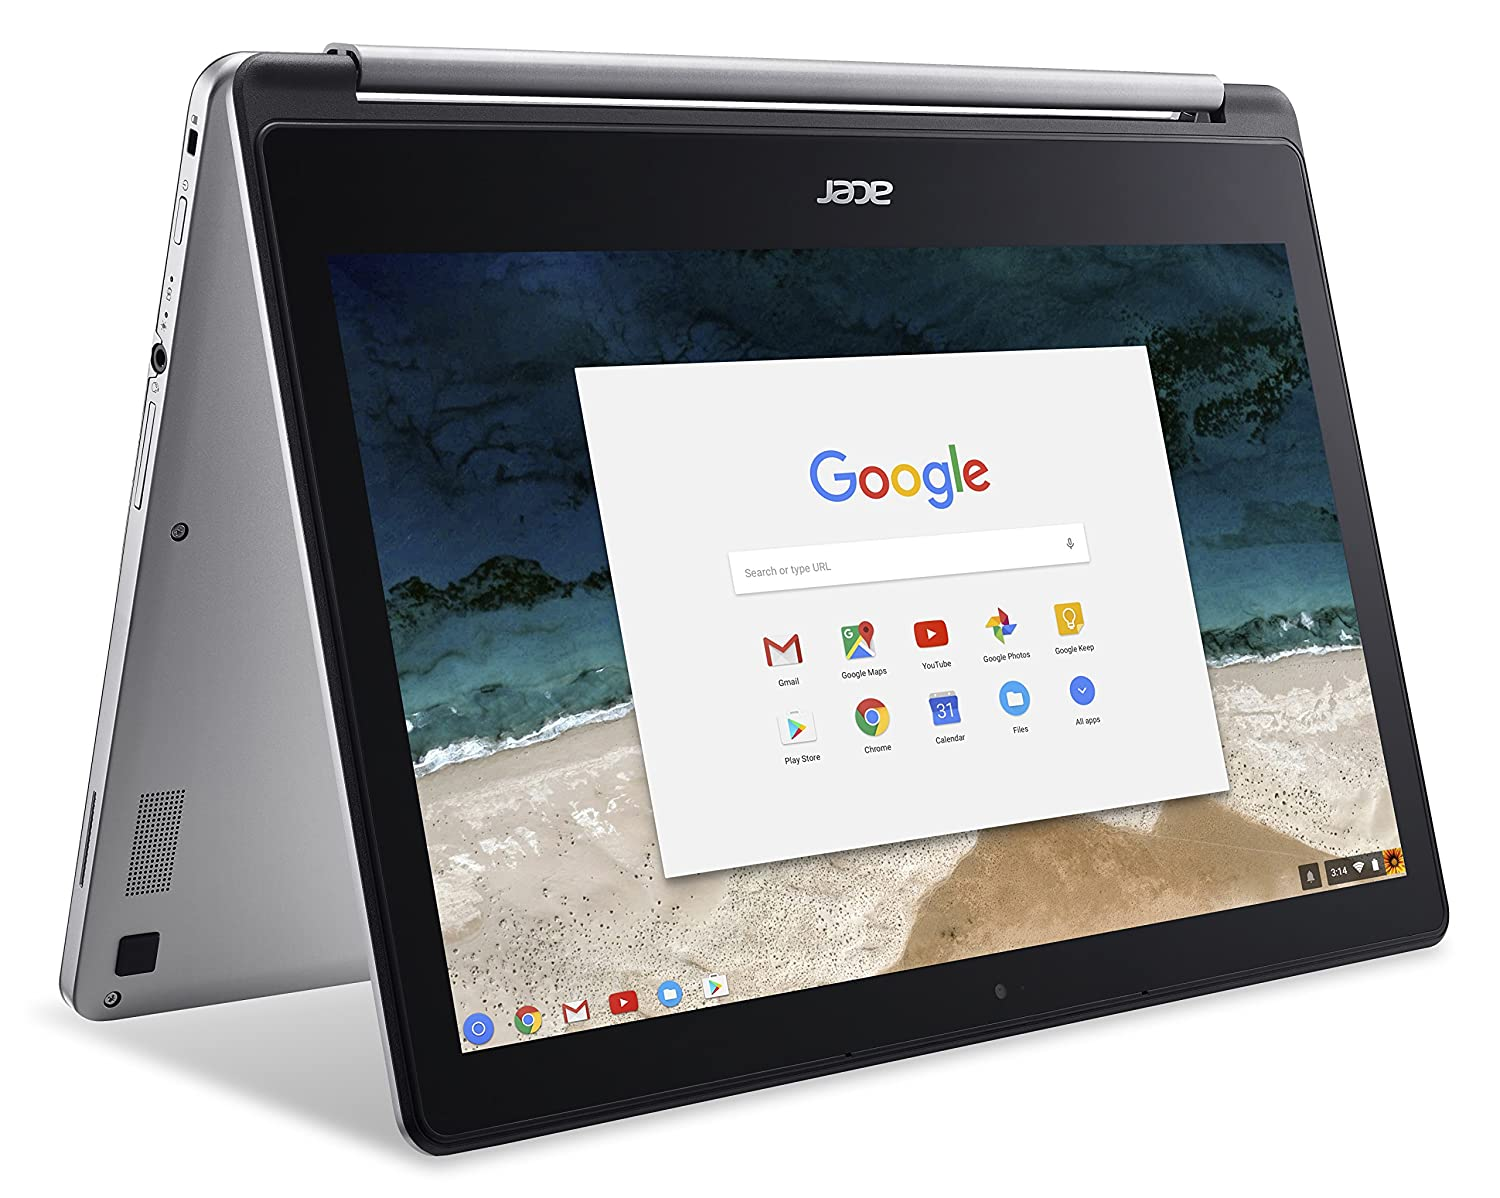 chromebooks that run android apps